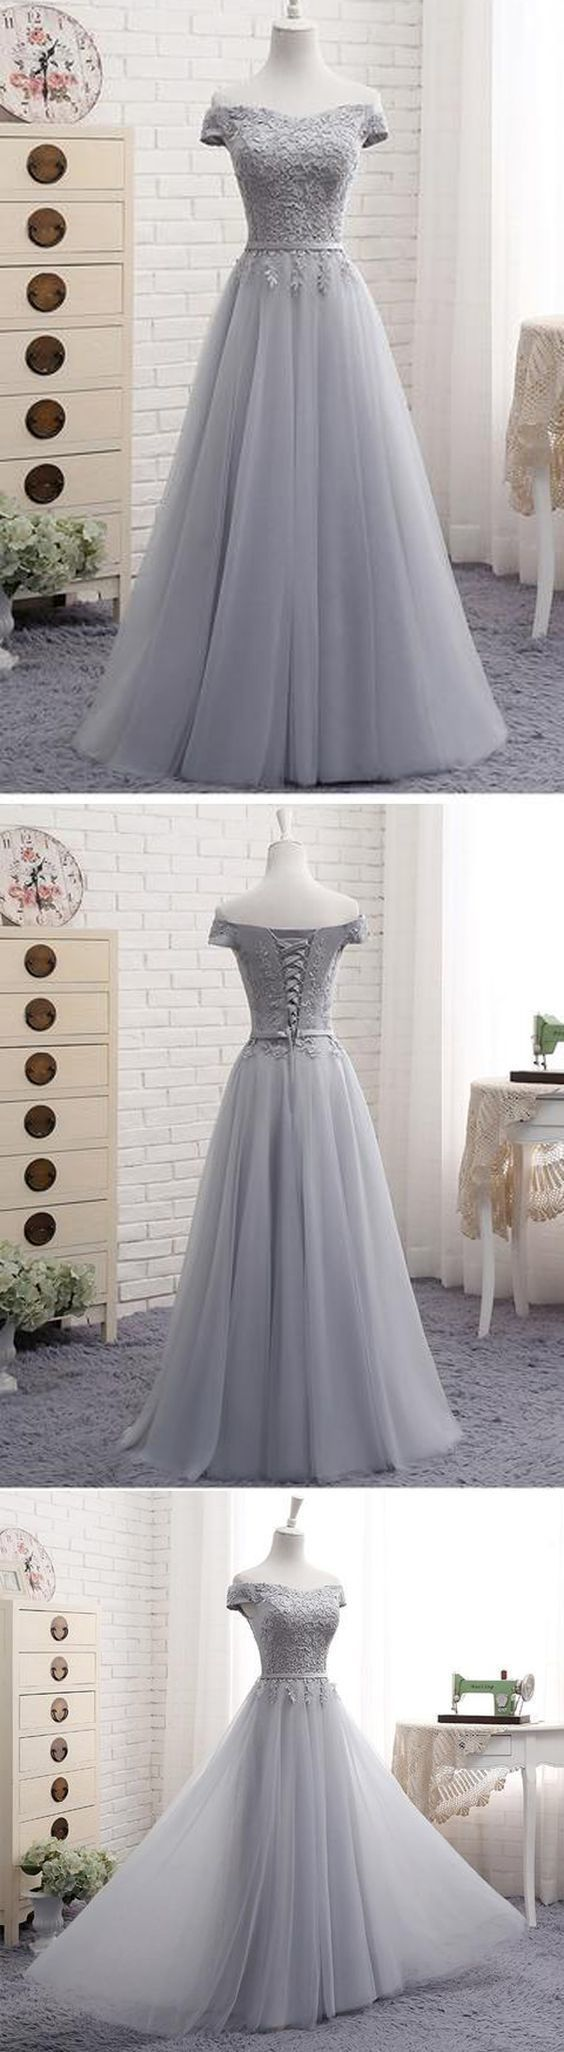 ALine Gray Off the Shoulder Tulle Laceup Sweetheart Prom Dress in